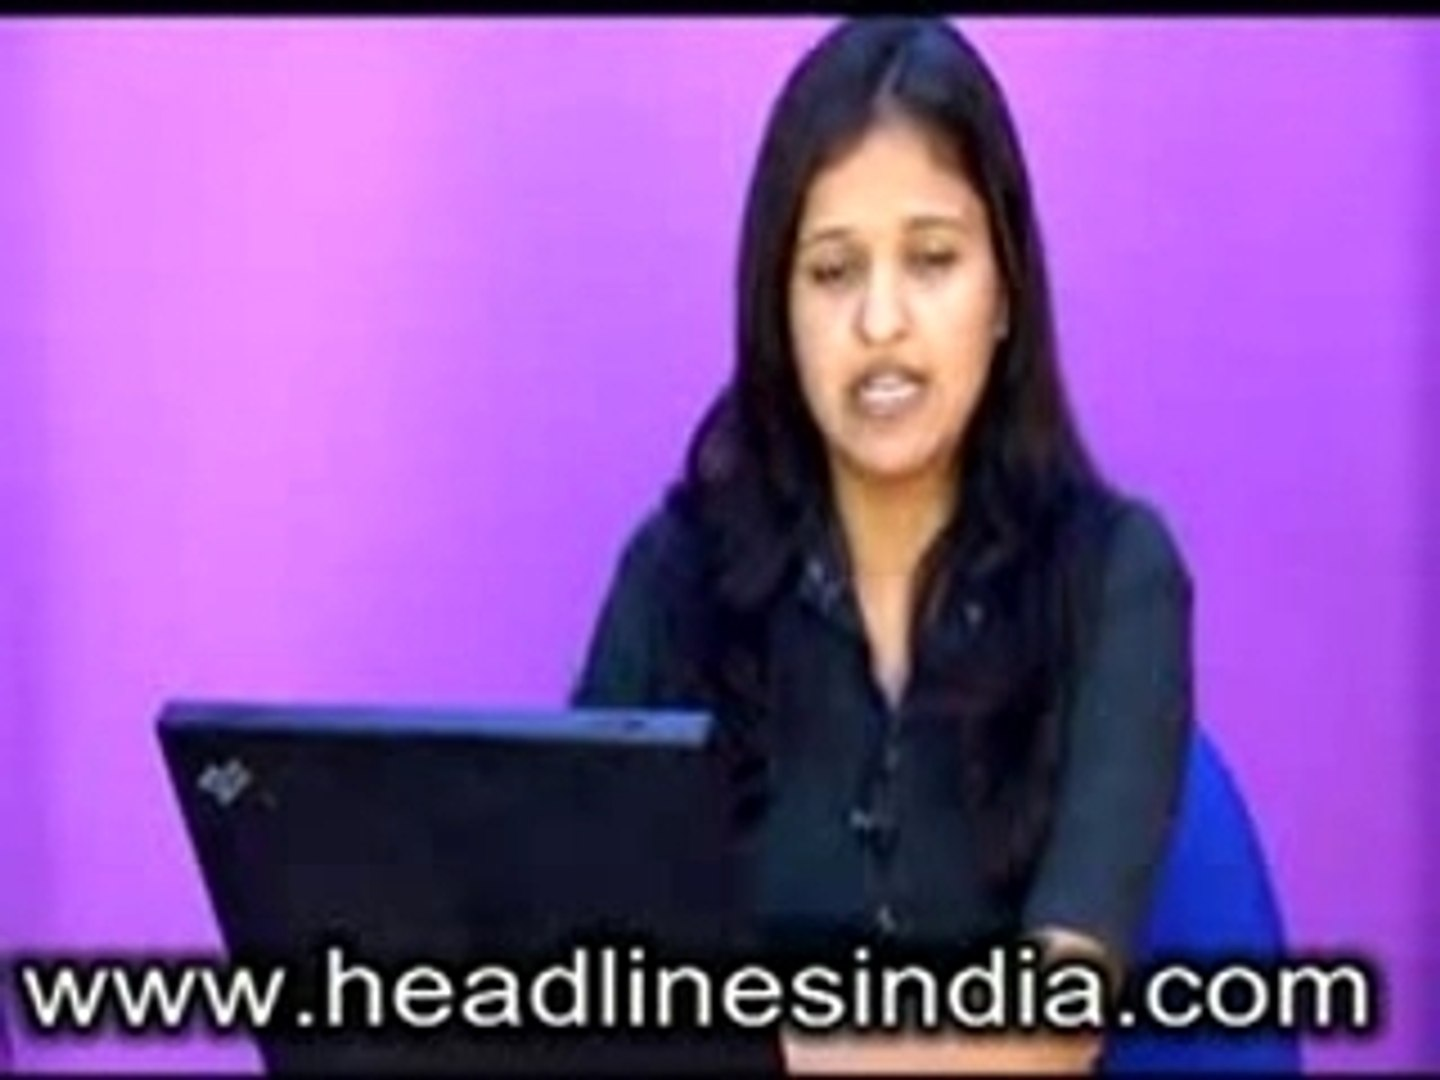 India Online News, Russian year in India